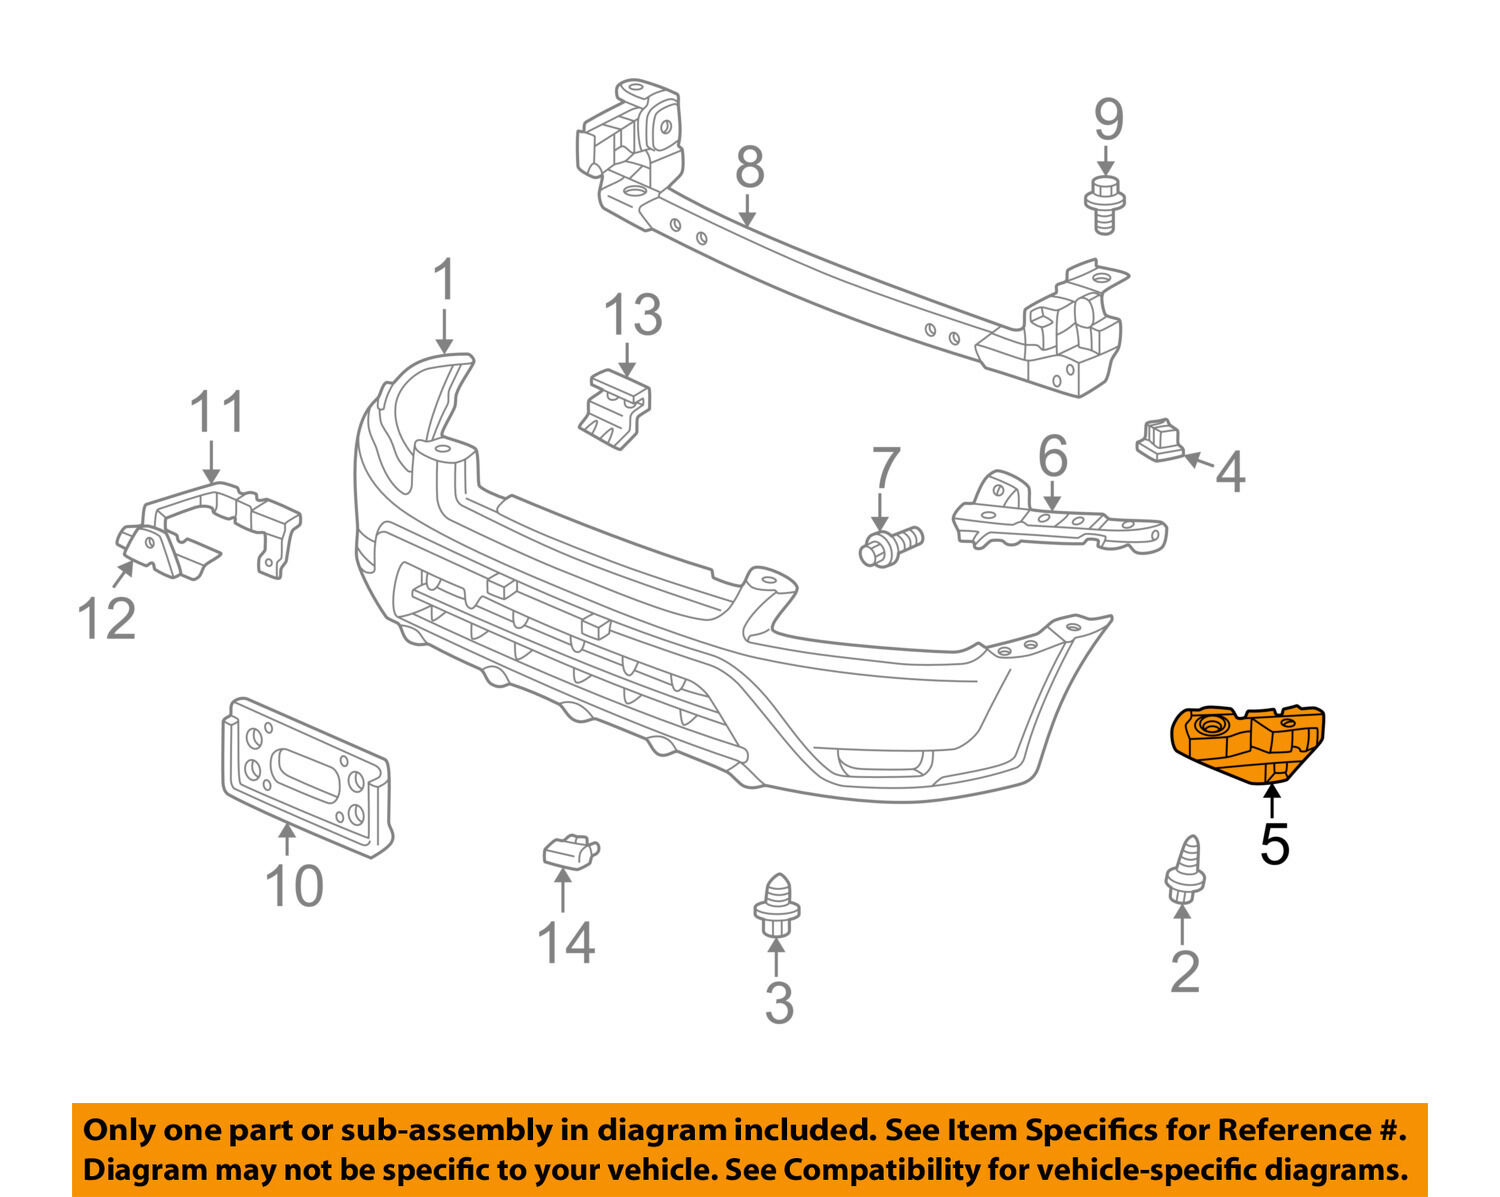 Honda Oem 02 06 Cr V Front Bumper Spacer Support Bracket Right 2002 Crv Parts 1 Of 2only Available 71193s9a000